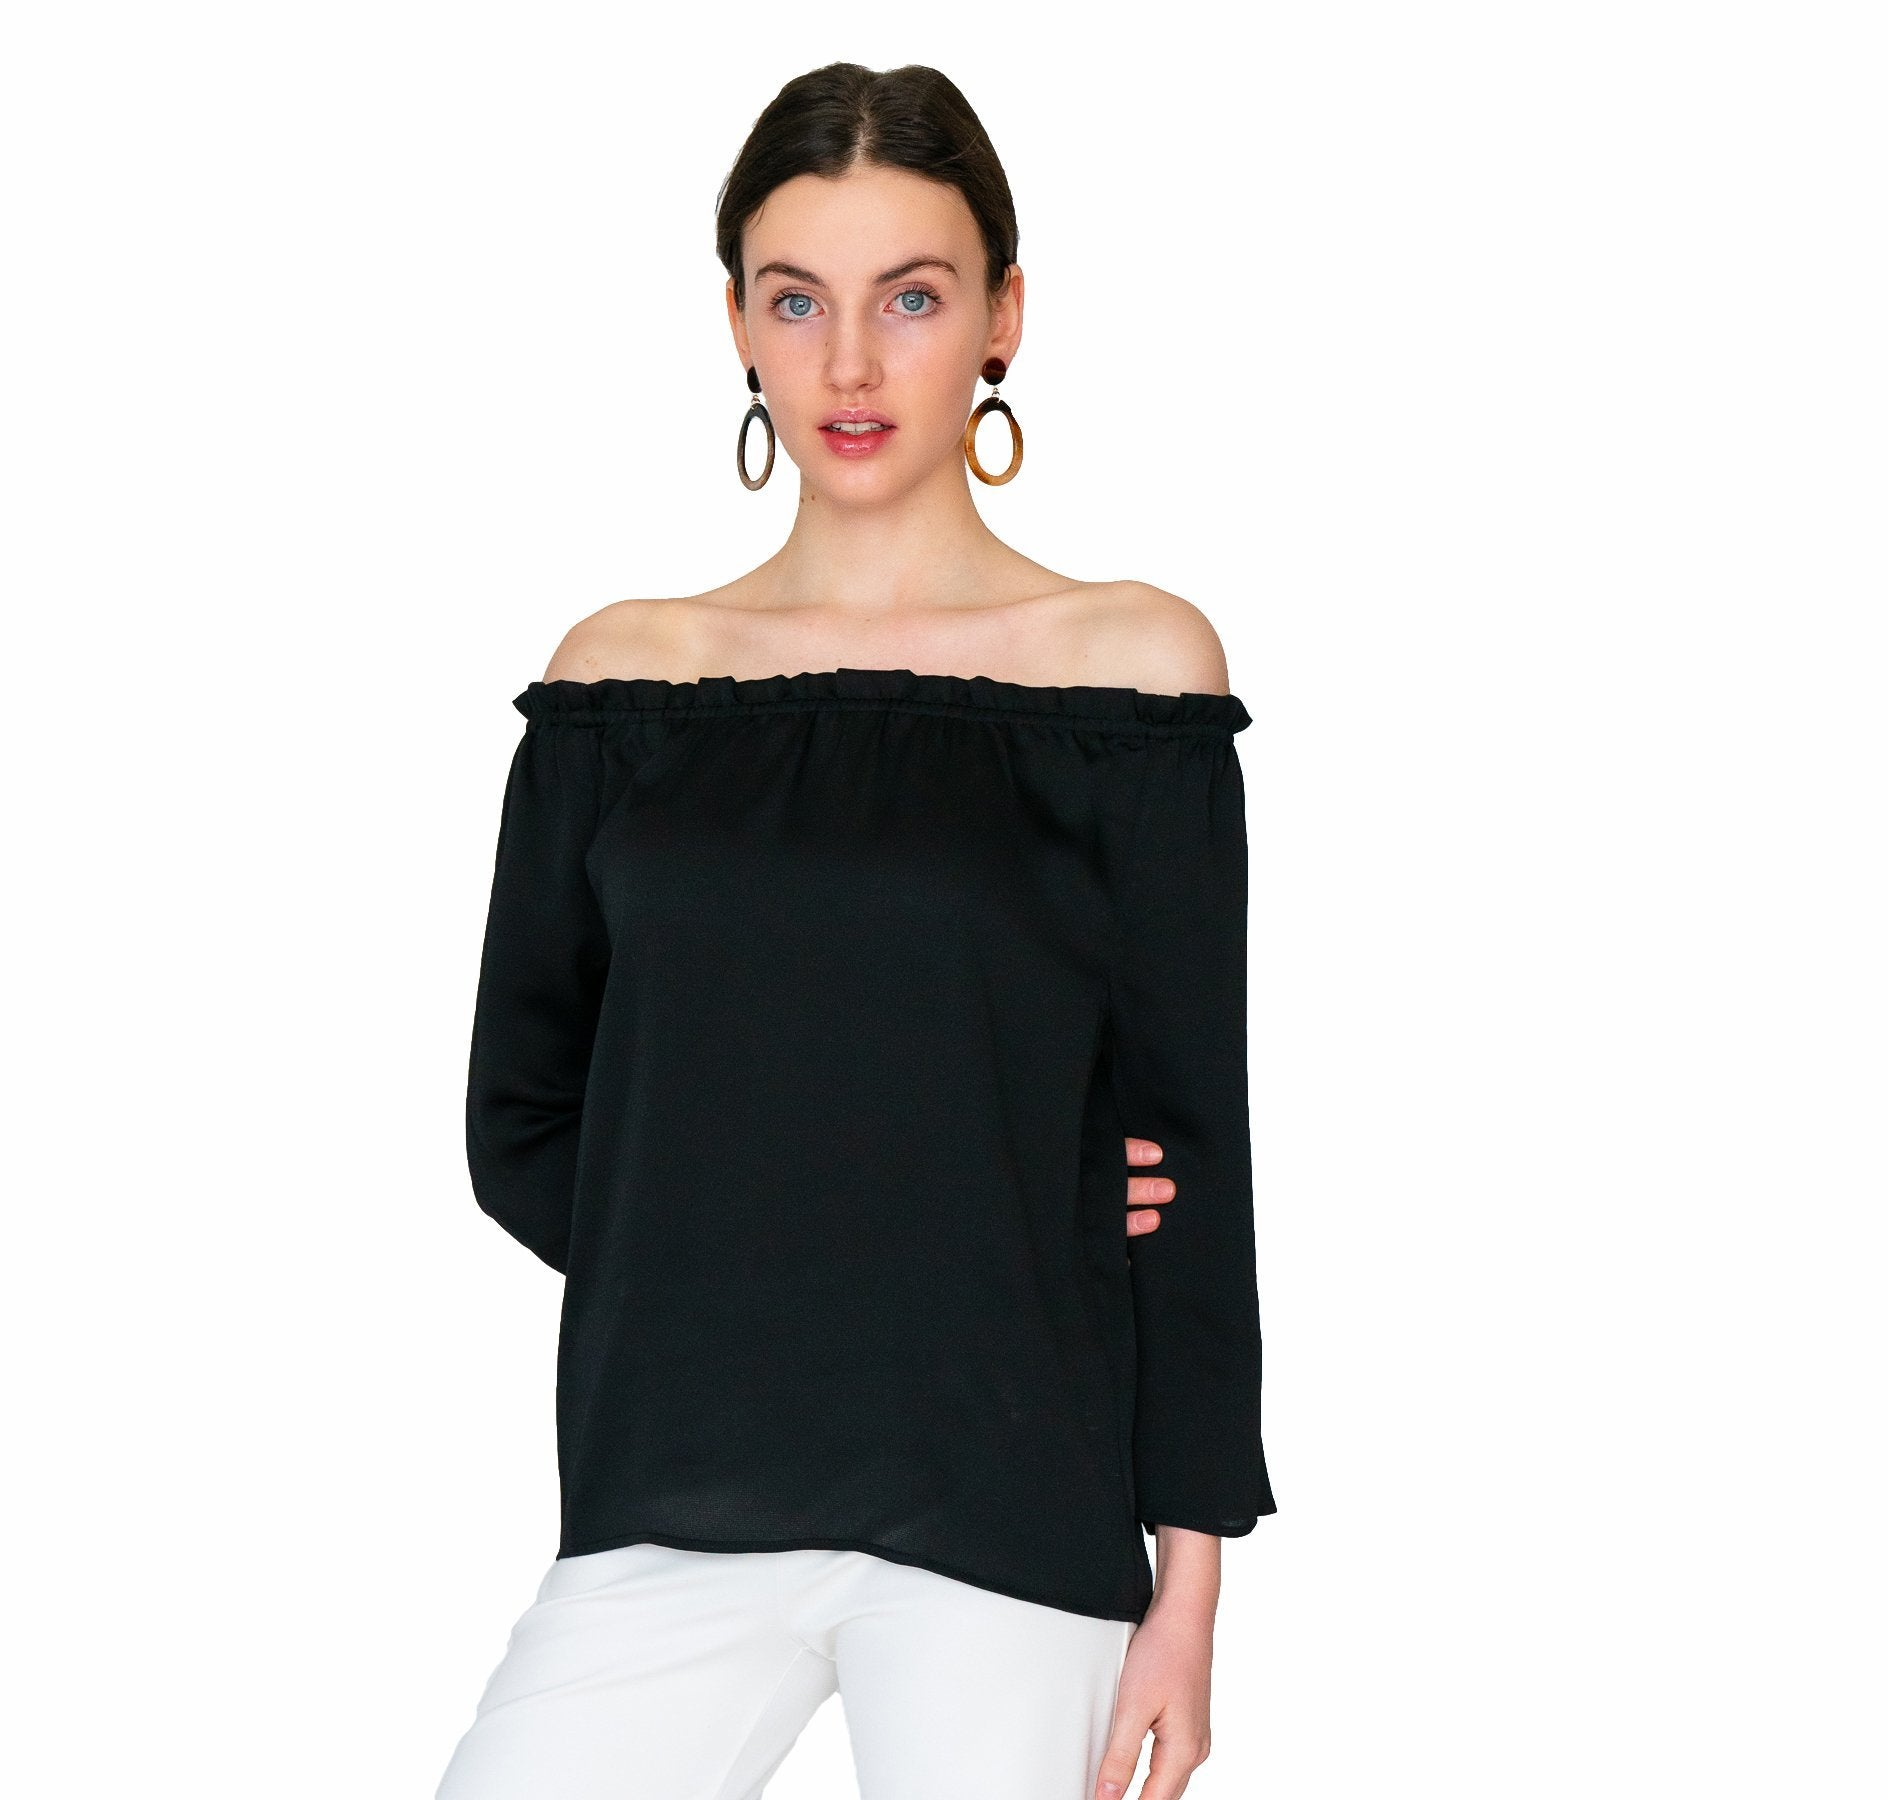 Bridget Blouse Solid Black - Elizabeth Ackerman New York